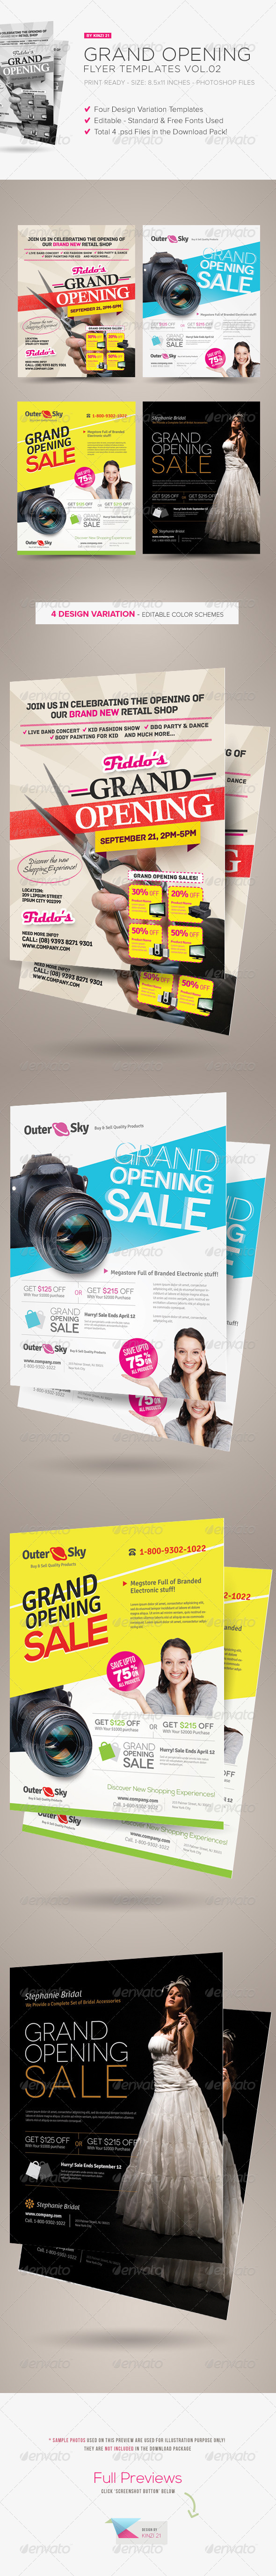 Grand Opening Flyers Vol.02 - Corporate Flyers